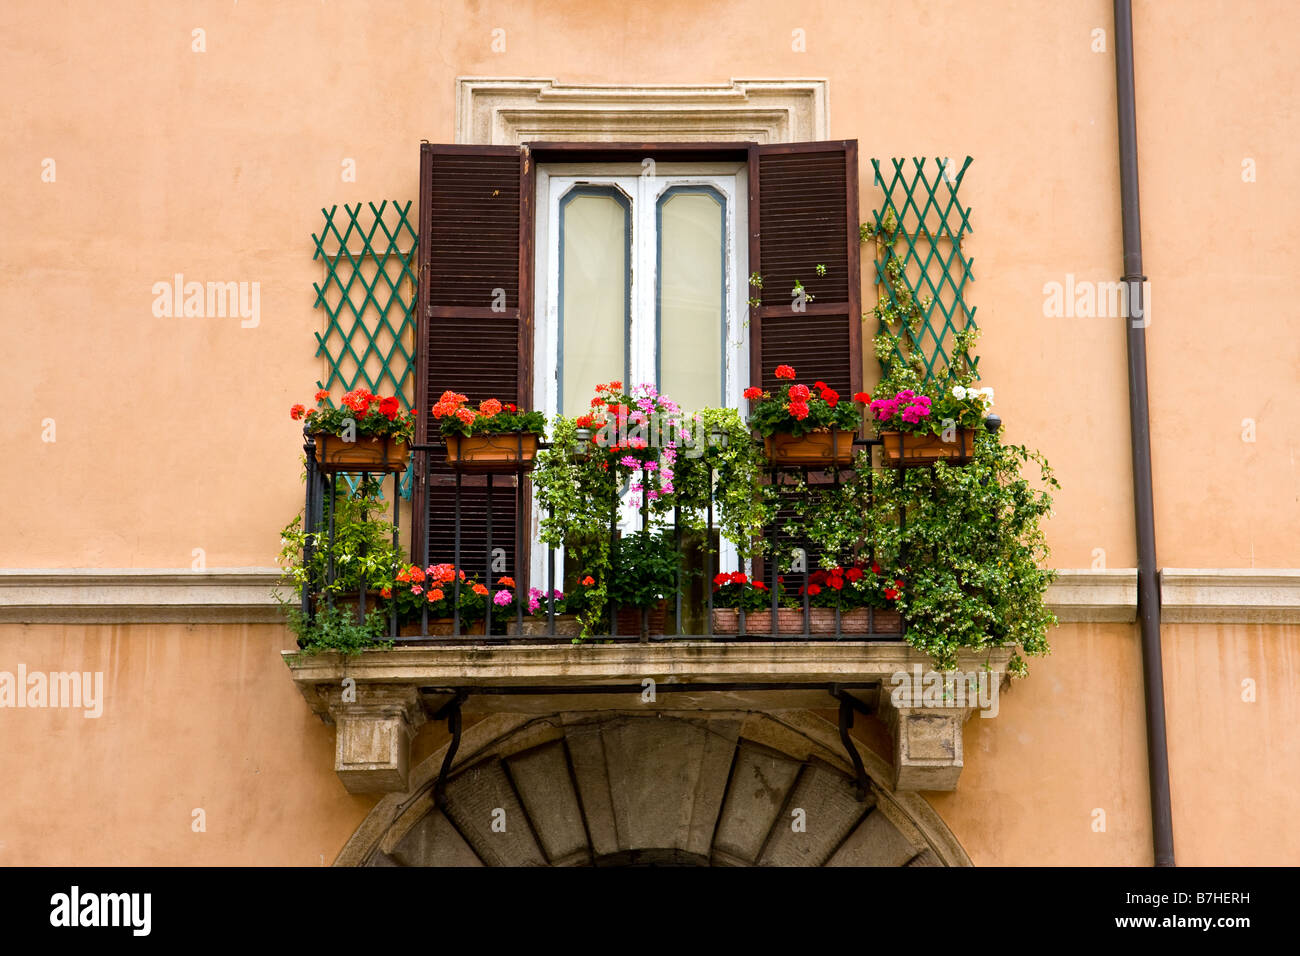 Flowers on window balcony in rome italy stock photo for Balcony in italian